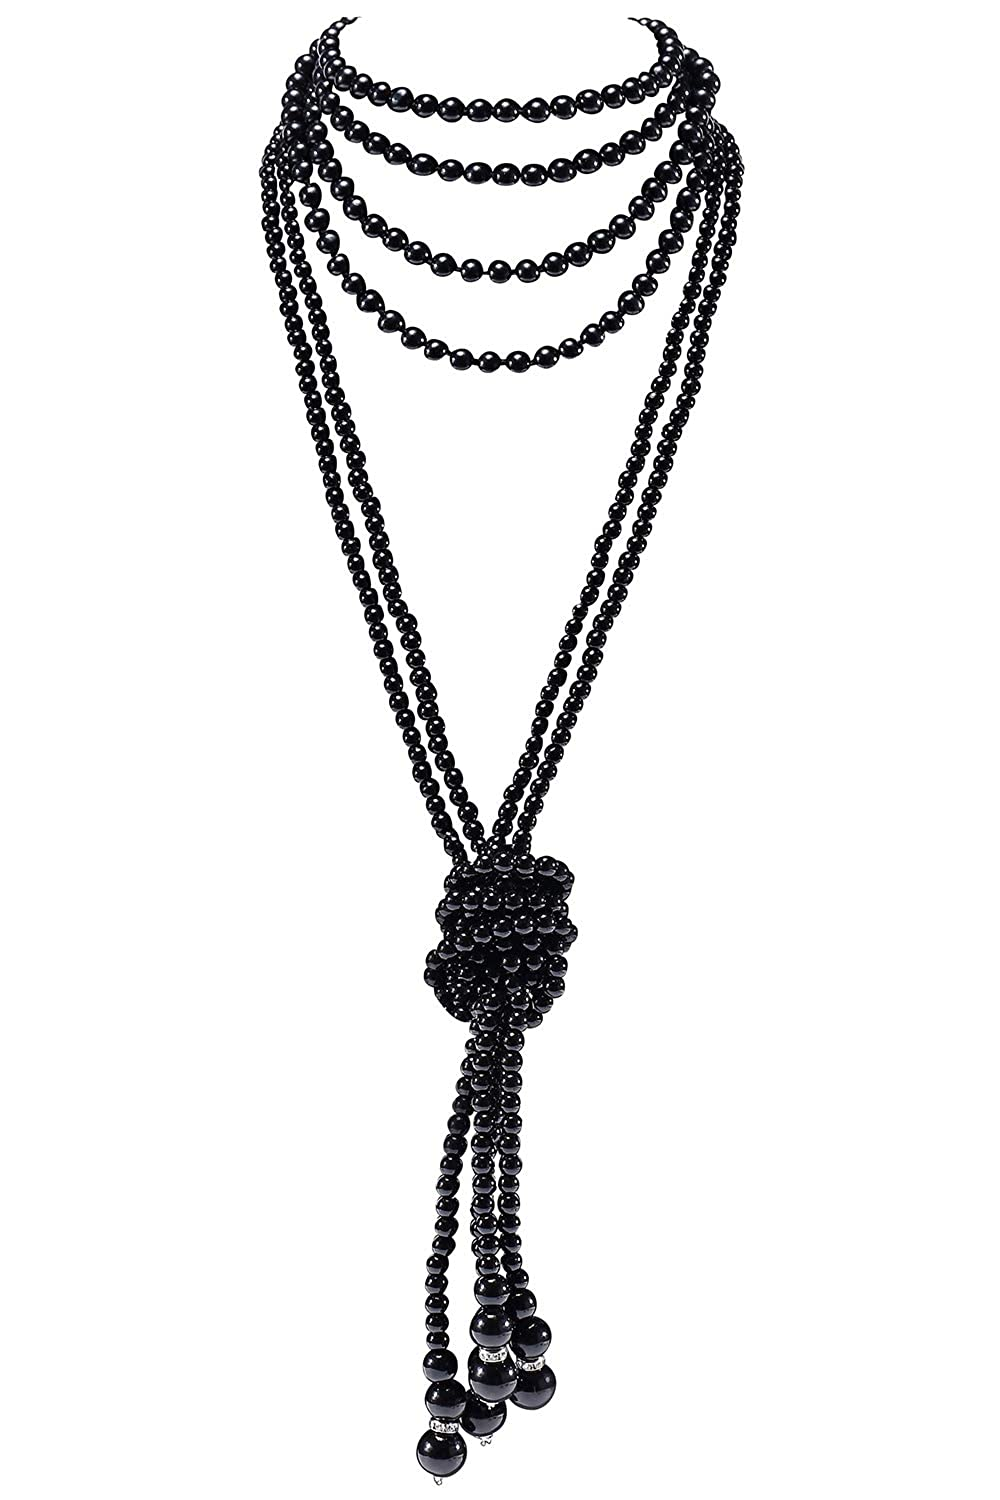 Knot Pearl Necklace2 + 59 inch Necklace1 BABEYOND 1920s Imitation Pearls Necklace Gatsby Long Knot Pearl Necklace 49 inch and 59 inch 20s Pearls 1920s Flapper Accessories